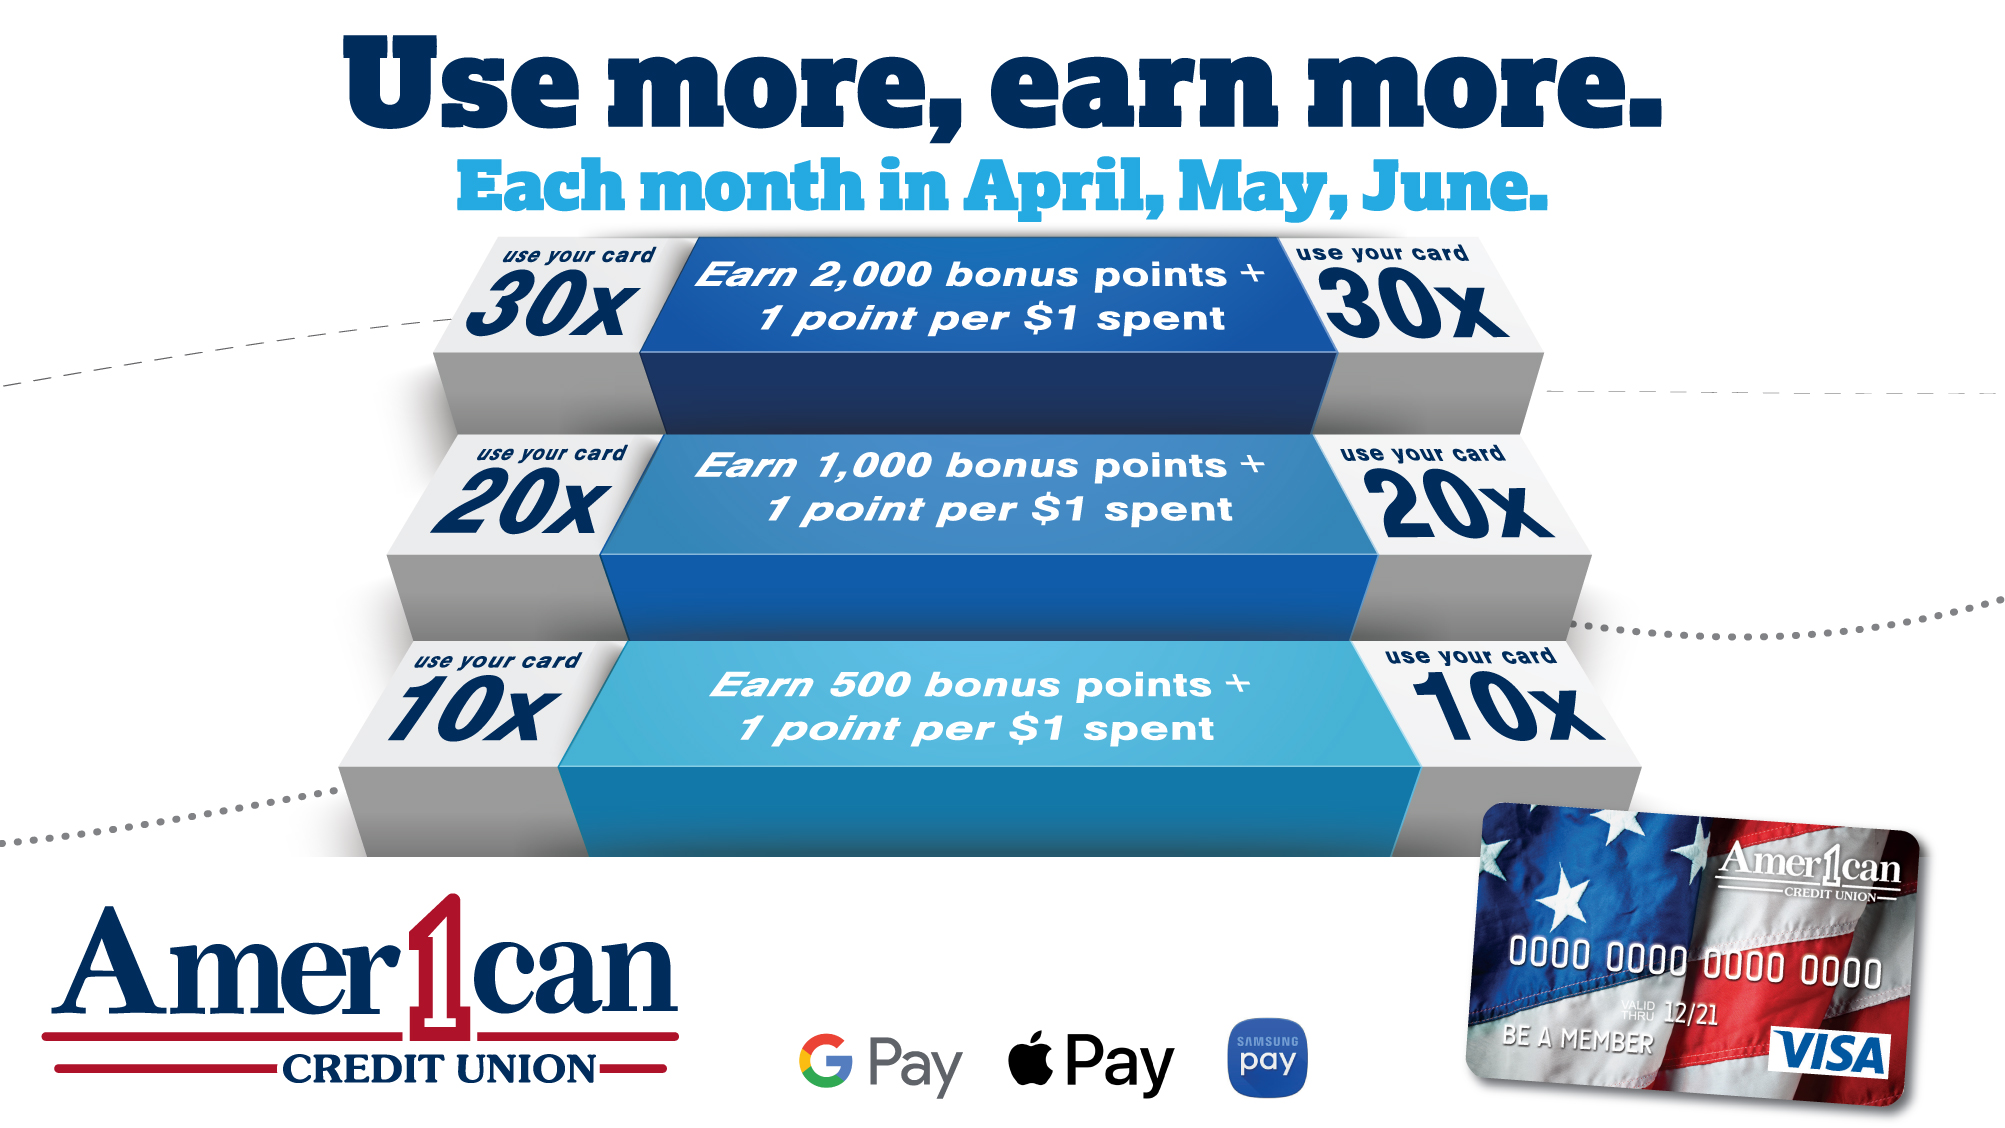 Use more, earn more Rewards points in April, May, and June! Ask us for more details.